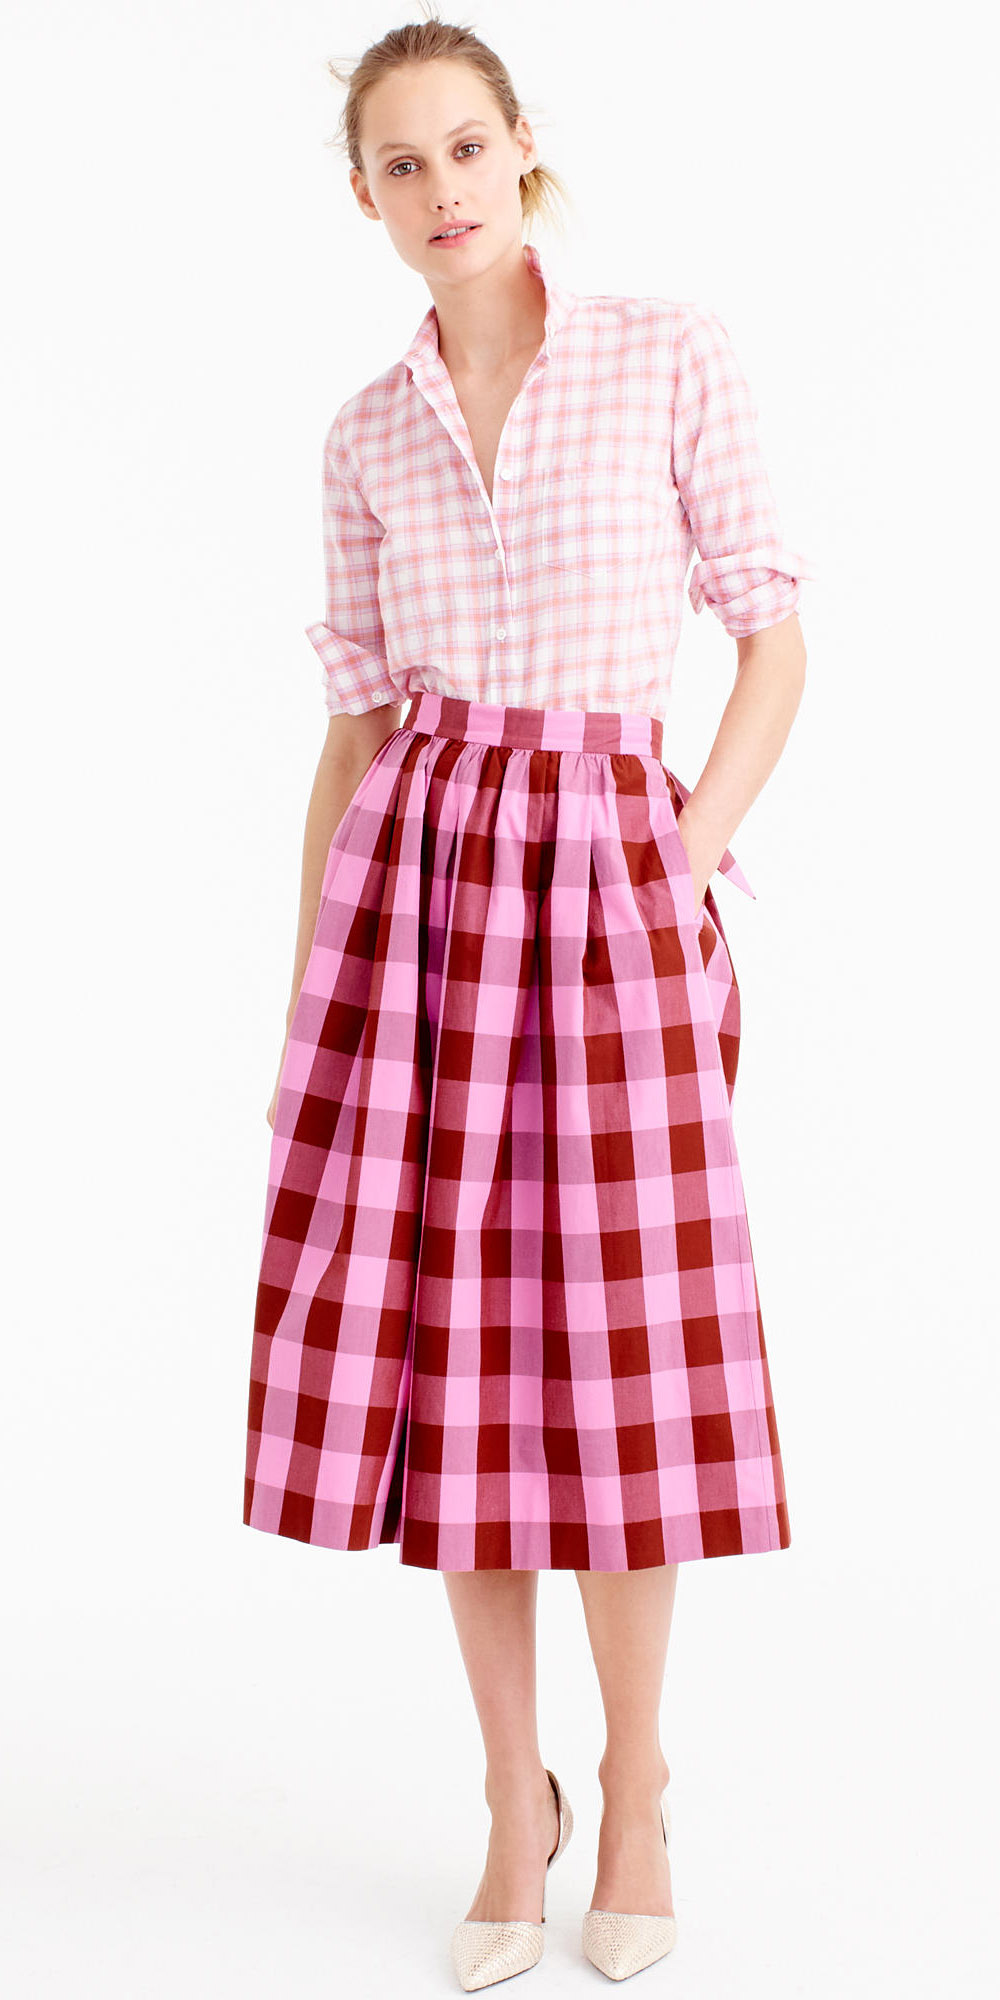 pink-magenta-midi-skirt-gingham-print-pink-light-collared-shirt-bun-blonde-spring-summer-lunch.jpg